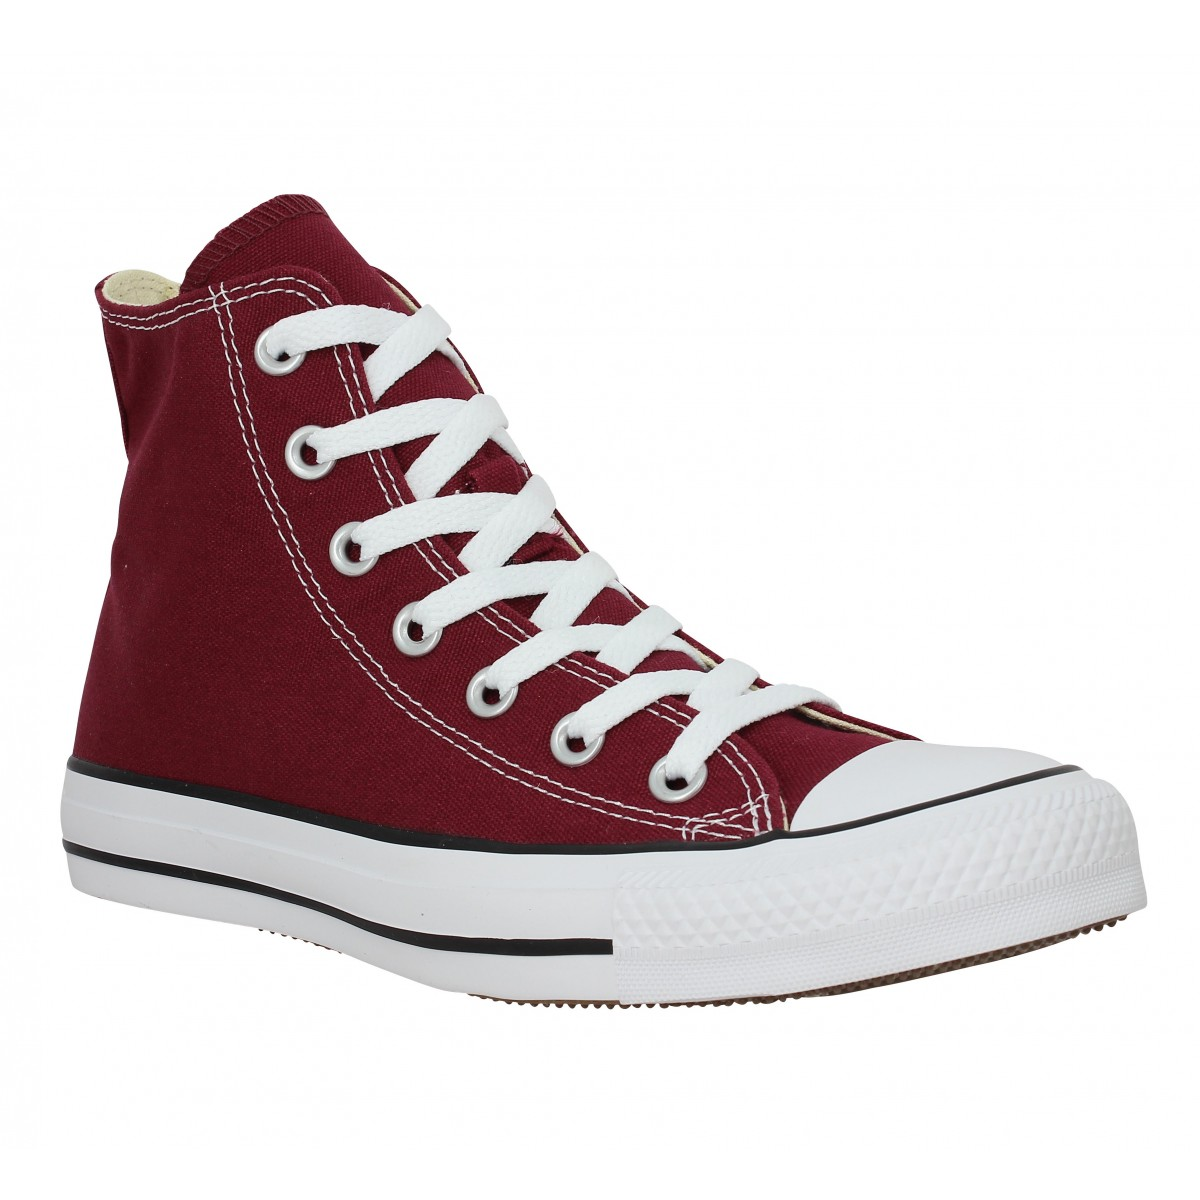 Baskets CONVERSE Chuck Taylor All Star Hi toile Femme Bordeaux